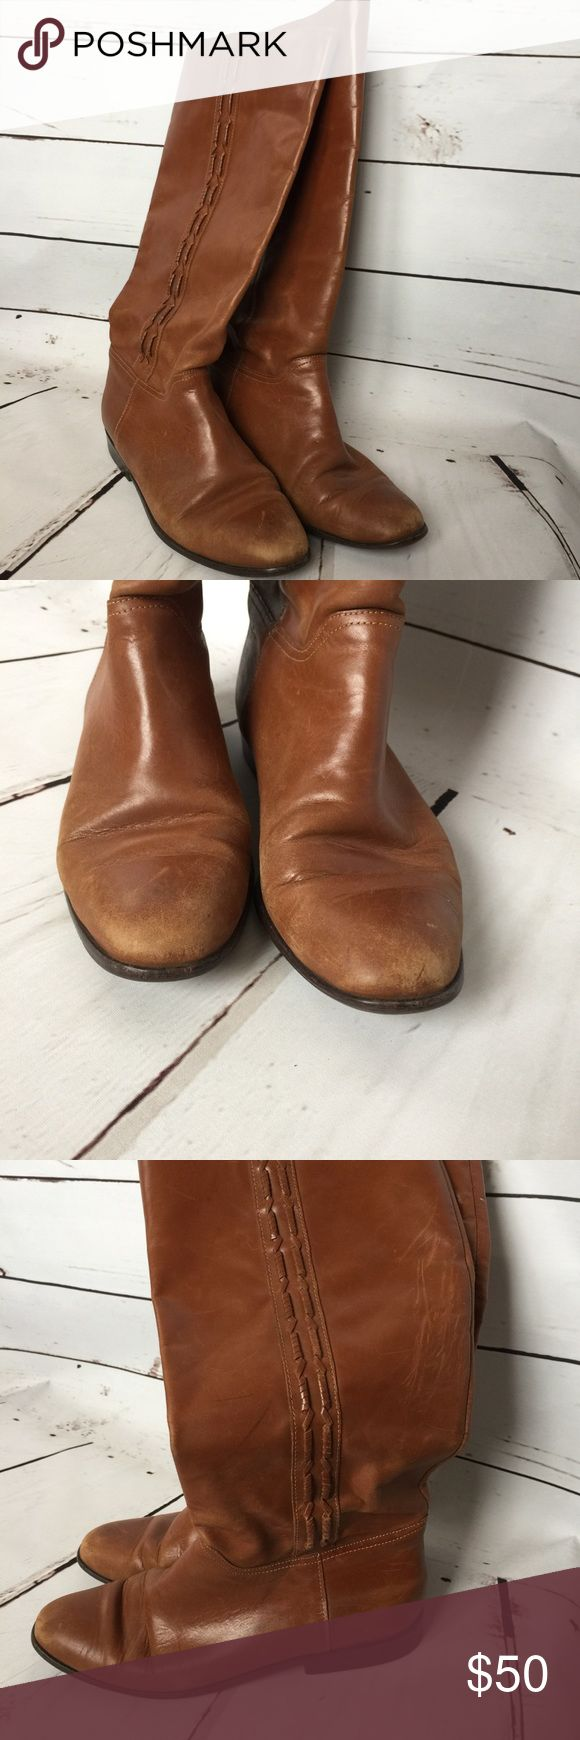 Nicole Women's Brown Leather Knee-High Boots Sz 8 Nicole Women's Brown Leather Boots 👢  Size 8  They have some scuff marks as seen in the photos but are in great condition otherwise. There's no size label but they measure as a size 8 according to the chart in the last photo. I'm happy to take any additional measurements before purchase. Nicole Shoes Over the Knee Boots